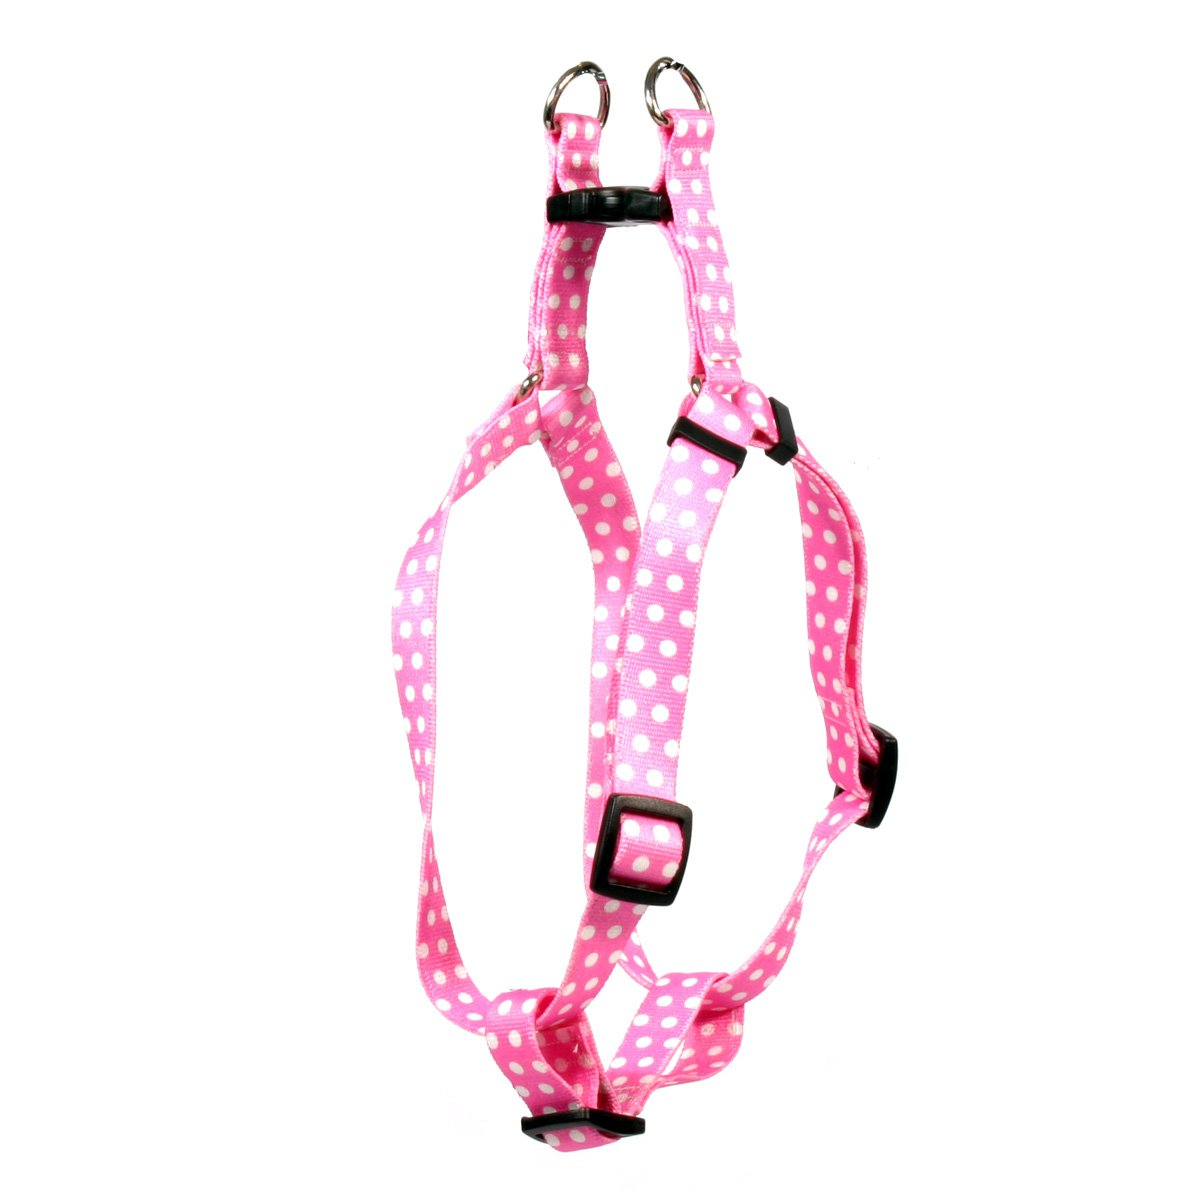 Yellow Dog Design New Pink Polka Dot Step-in Dog Harness, X-Small-3/8 Wide and fits Chest of 4.5 to 9''